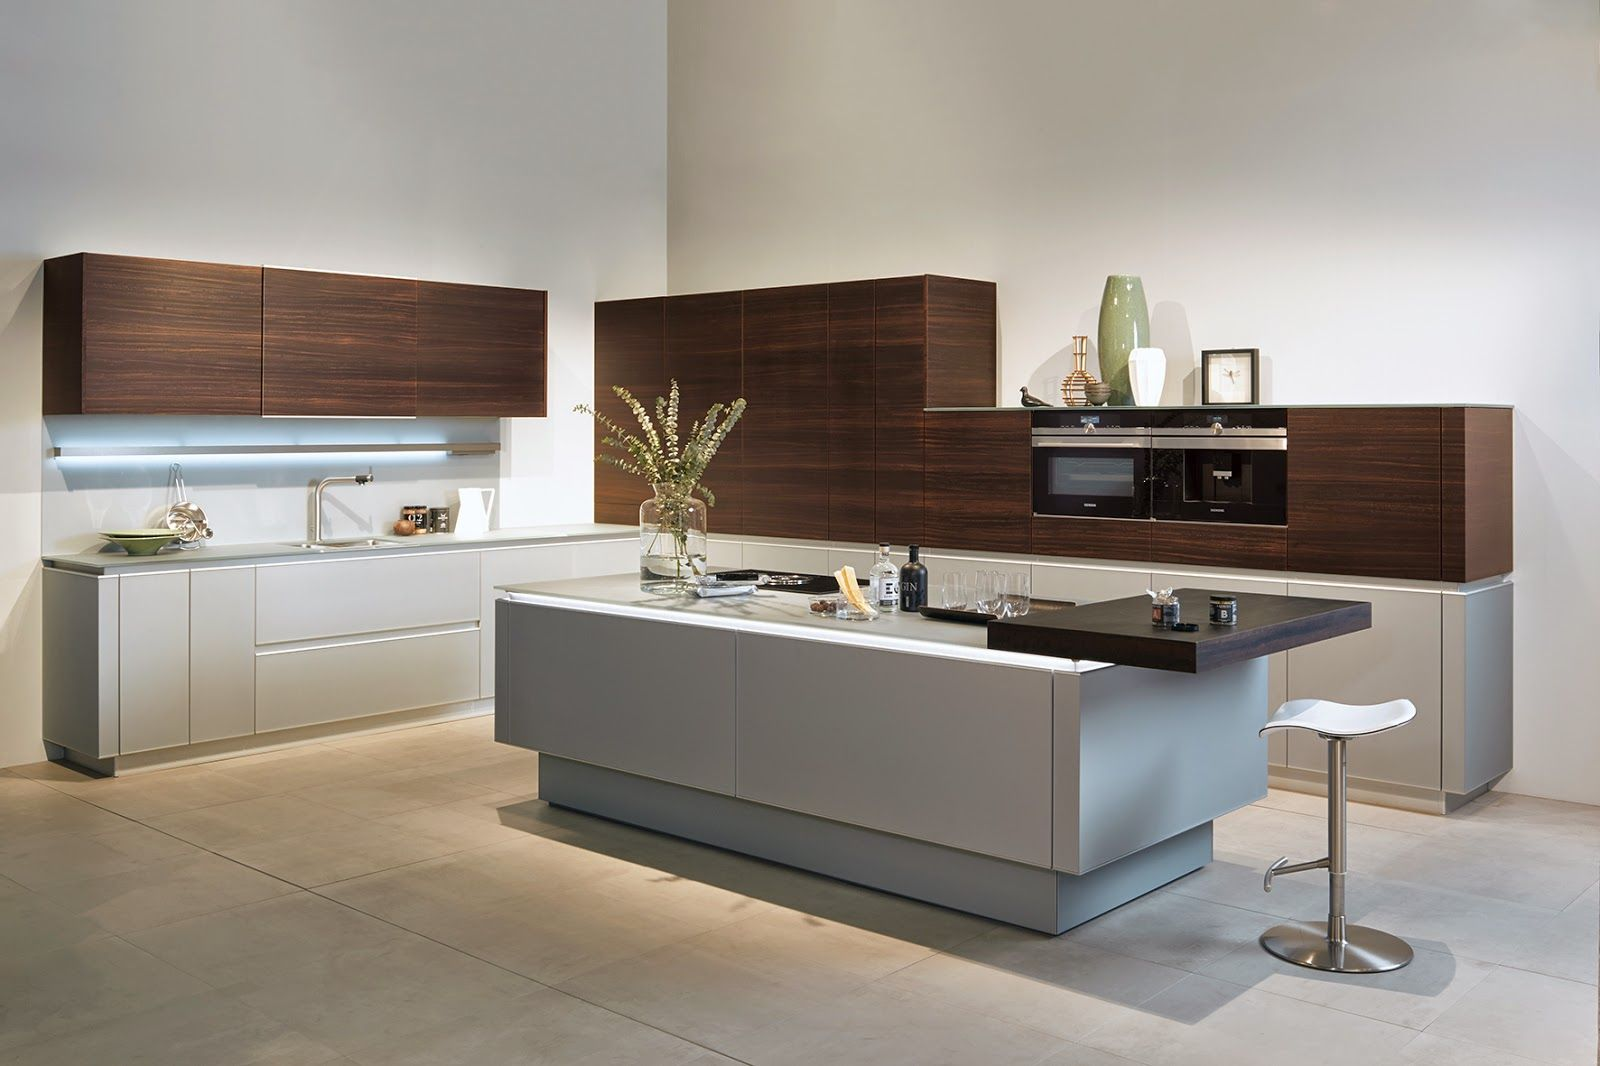 Kitchen Design Cabinet Best Luxury Cabinet Options For Your Kitchen Design Us For German Inspiration Design